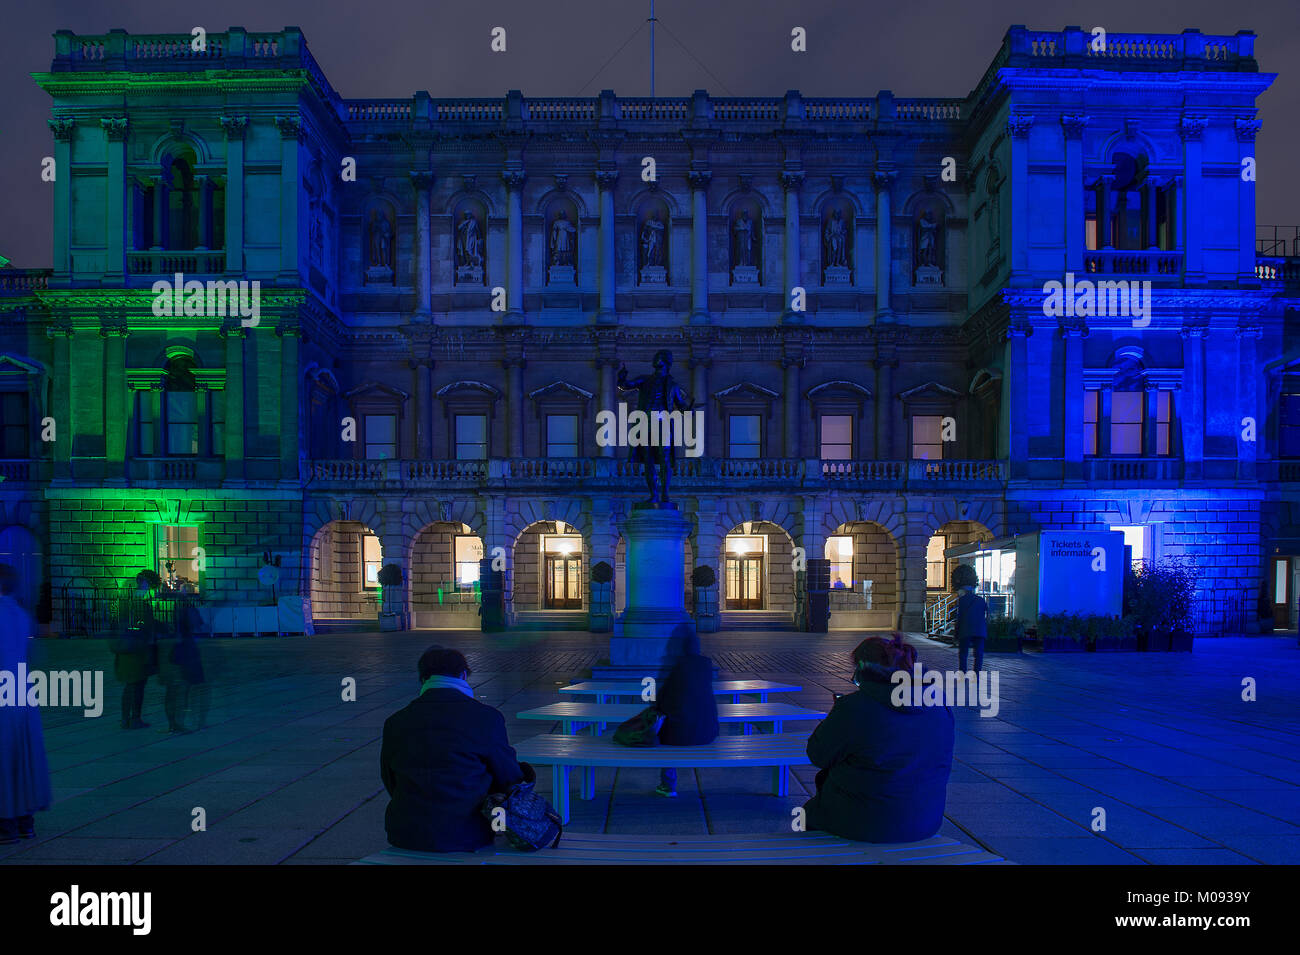 18 Jan 2018. Lumiere London. The facade of the RA in Piccadilly at night. Credit: Malcolm Park/Alamy - Stock Image